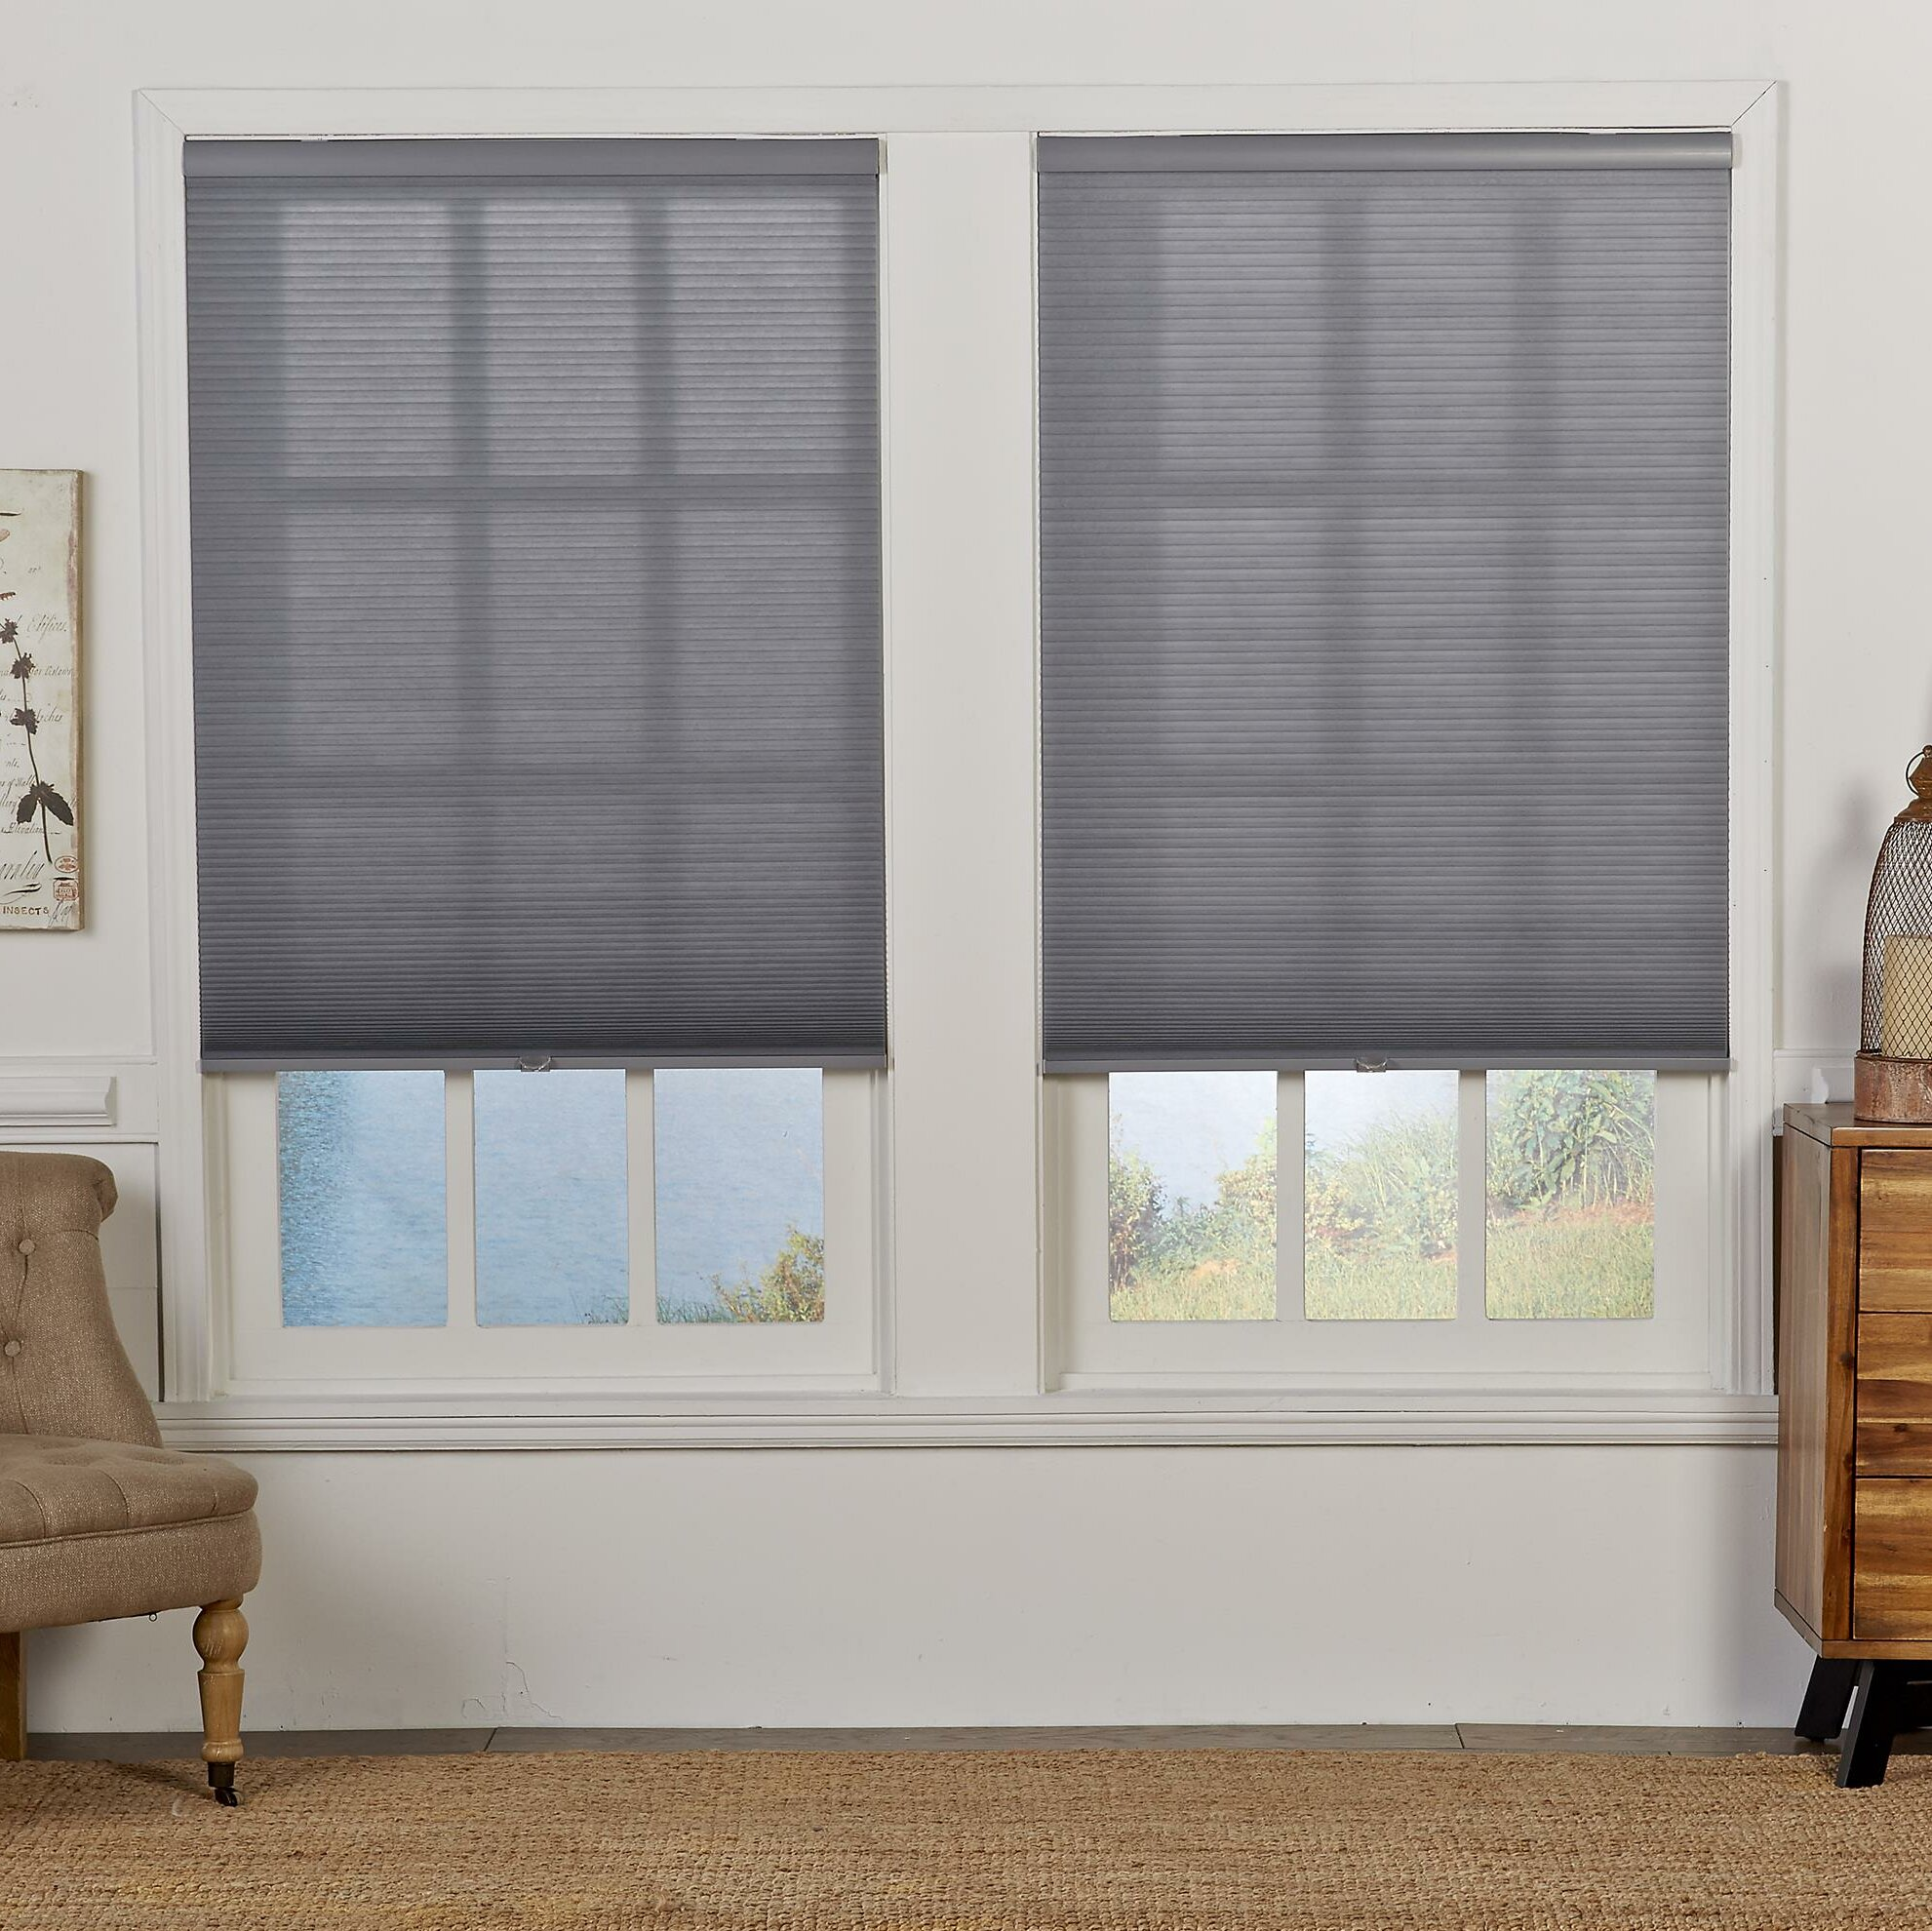 Wayfair Outdoor Blinds Shades You Ll Love In 2021